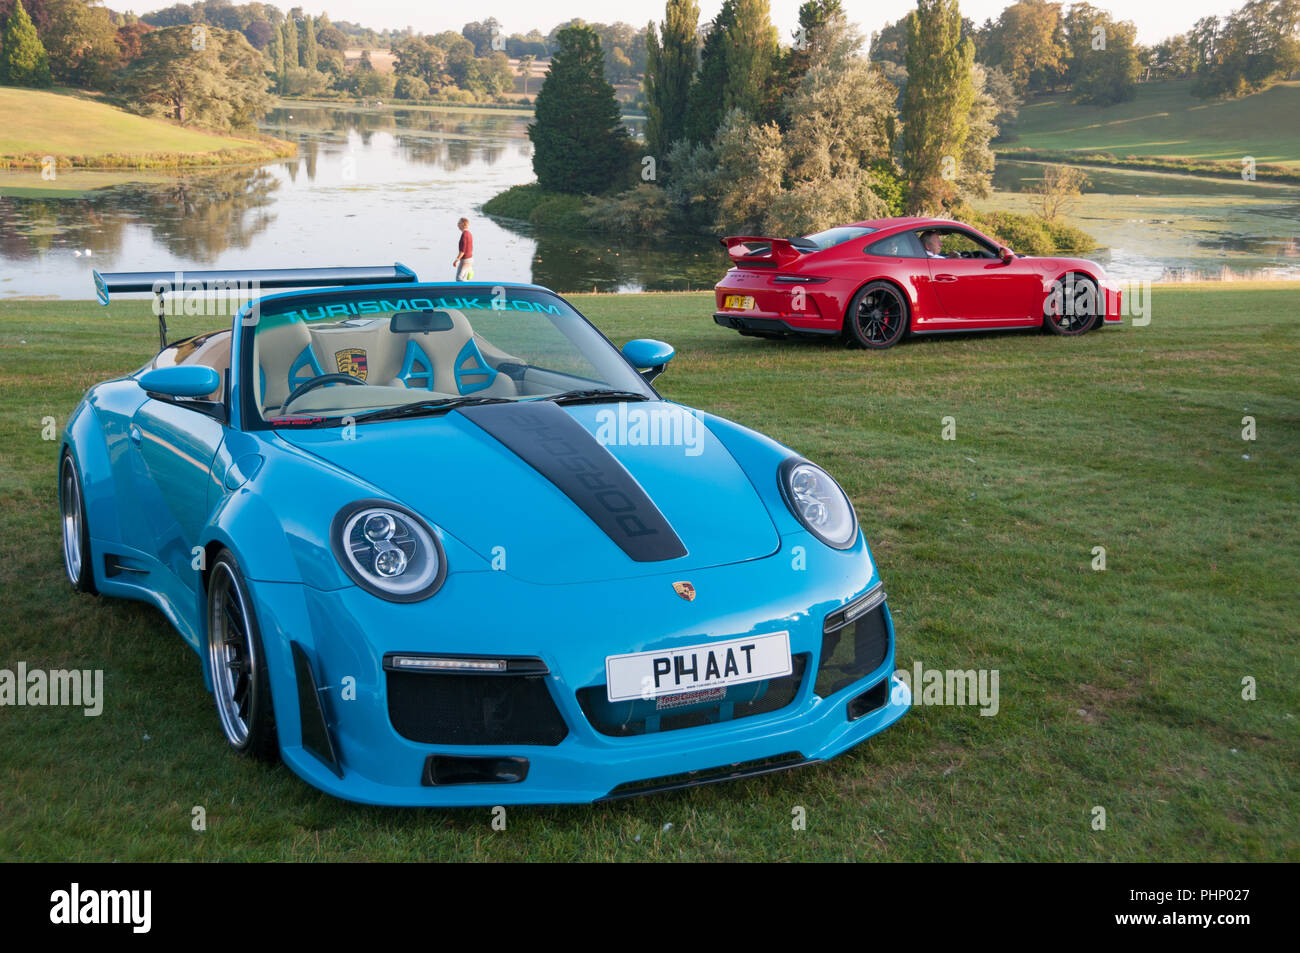 woodstock-oxfordshire-uk-02nd-sep-2018-over-400-porsches-arrive-at-blenheim-palace-salon-prive-concours-blenheim-palace-classic-and-supercar-event-woodstock-oxfordshire-2nd-sep-2018-credit-stanislav-halcinalamy-live-news-PHP027.jpg